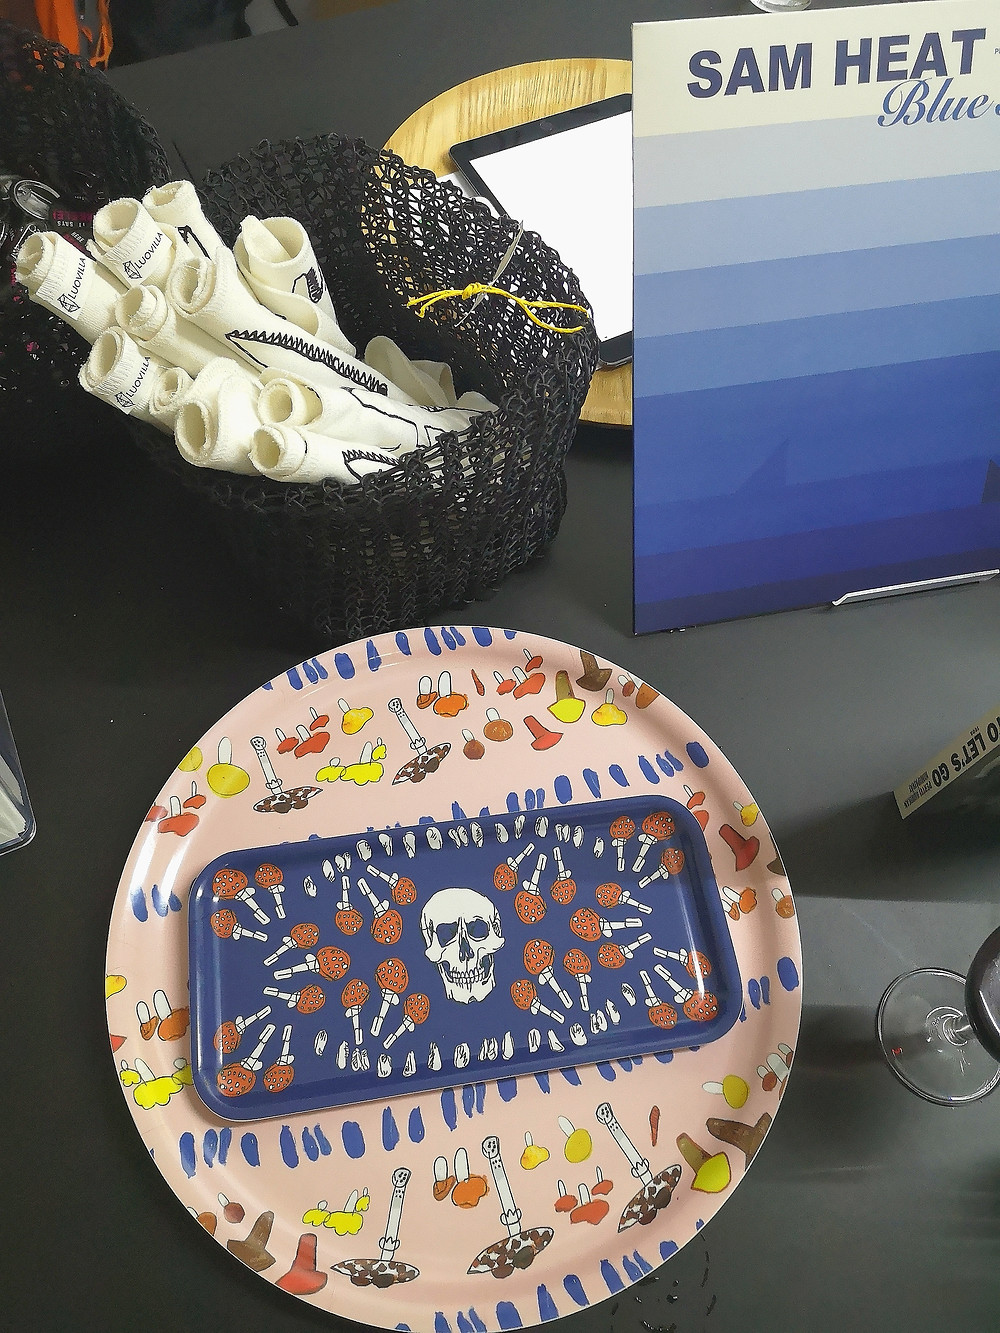 A small, black basket with rolled up black and white prints in it. At the front, two trays, one round with mushrooms on a pink background, and a smaller, blue, square tray on top of it with a skull motif.